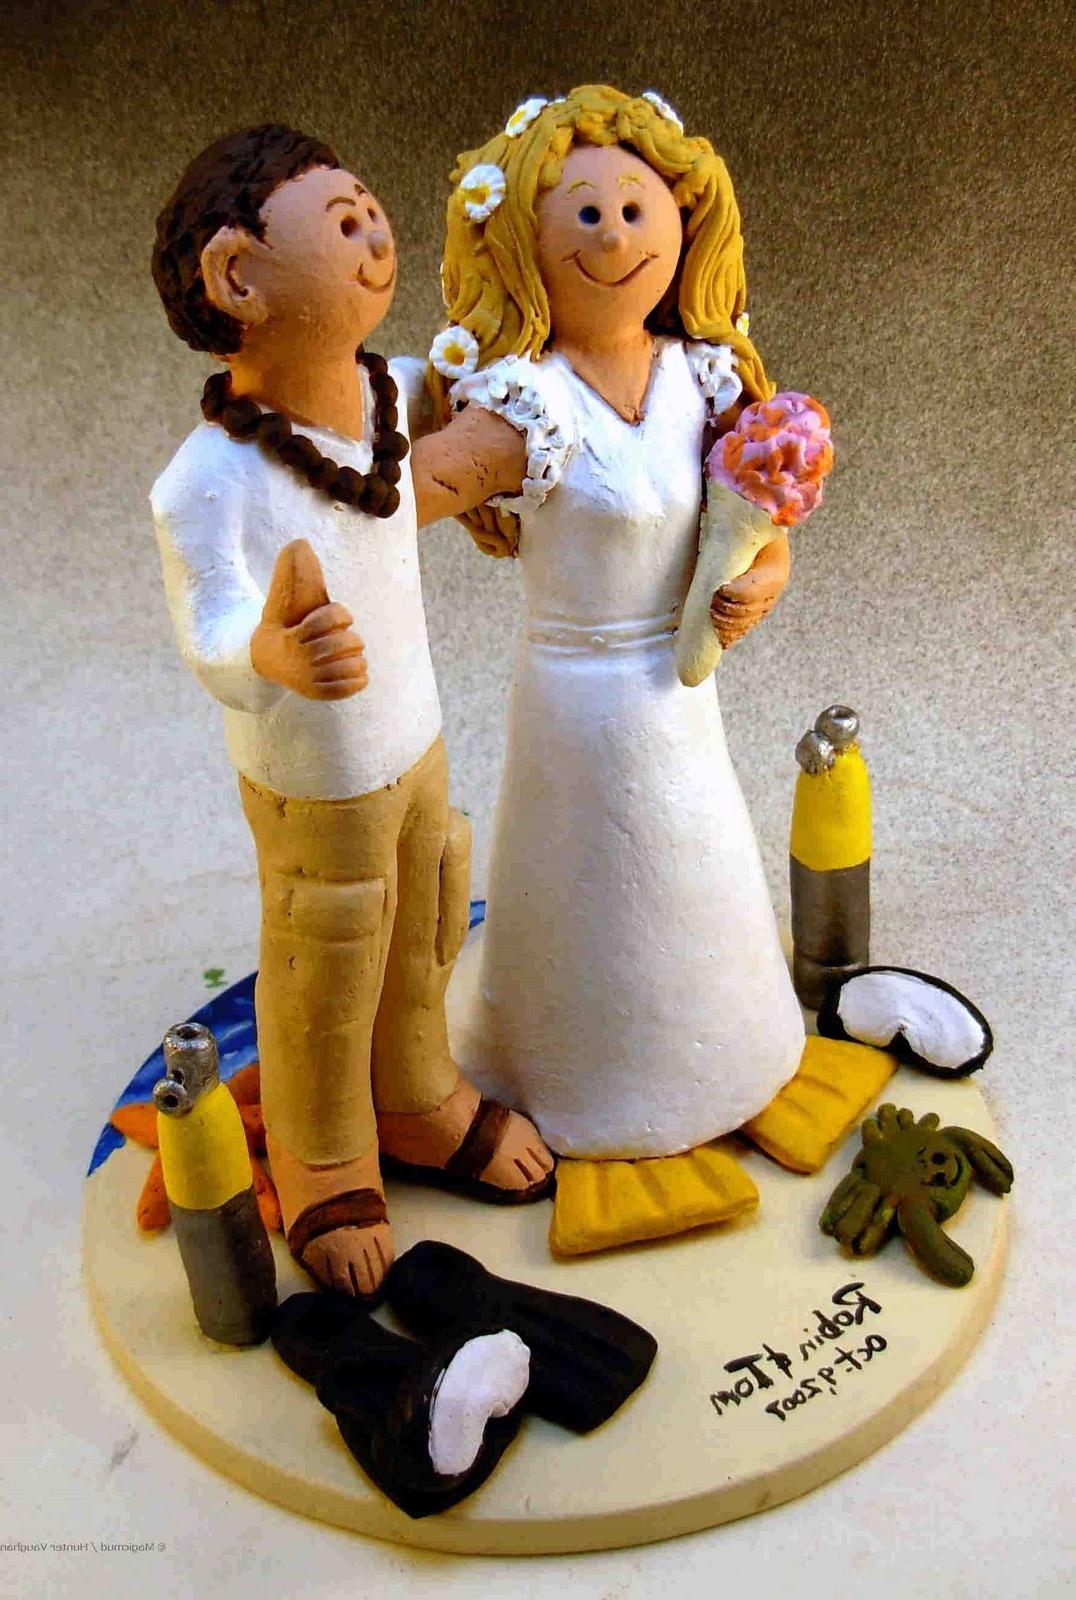 Wedding Cake Topper of the Day